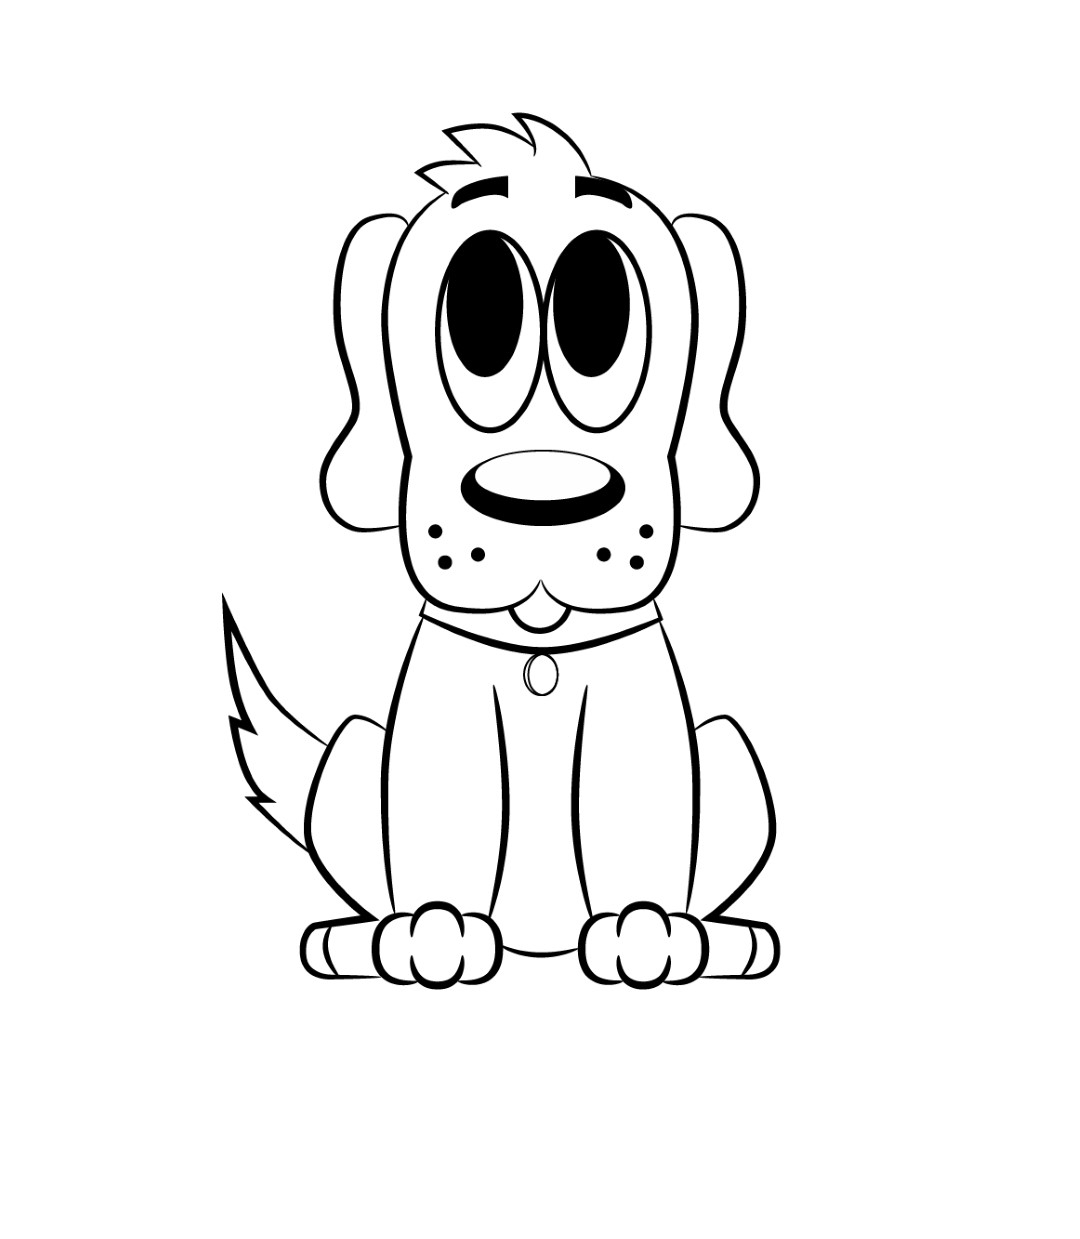 1080x1239 Cartoon Drawings Of Dogs How To Draw A Cartoon Dog